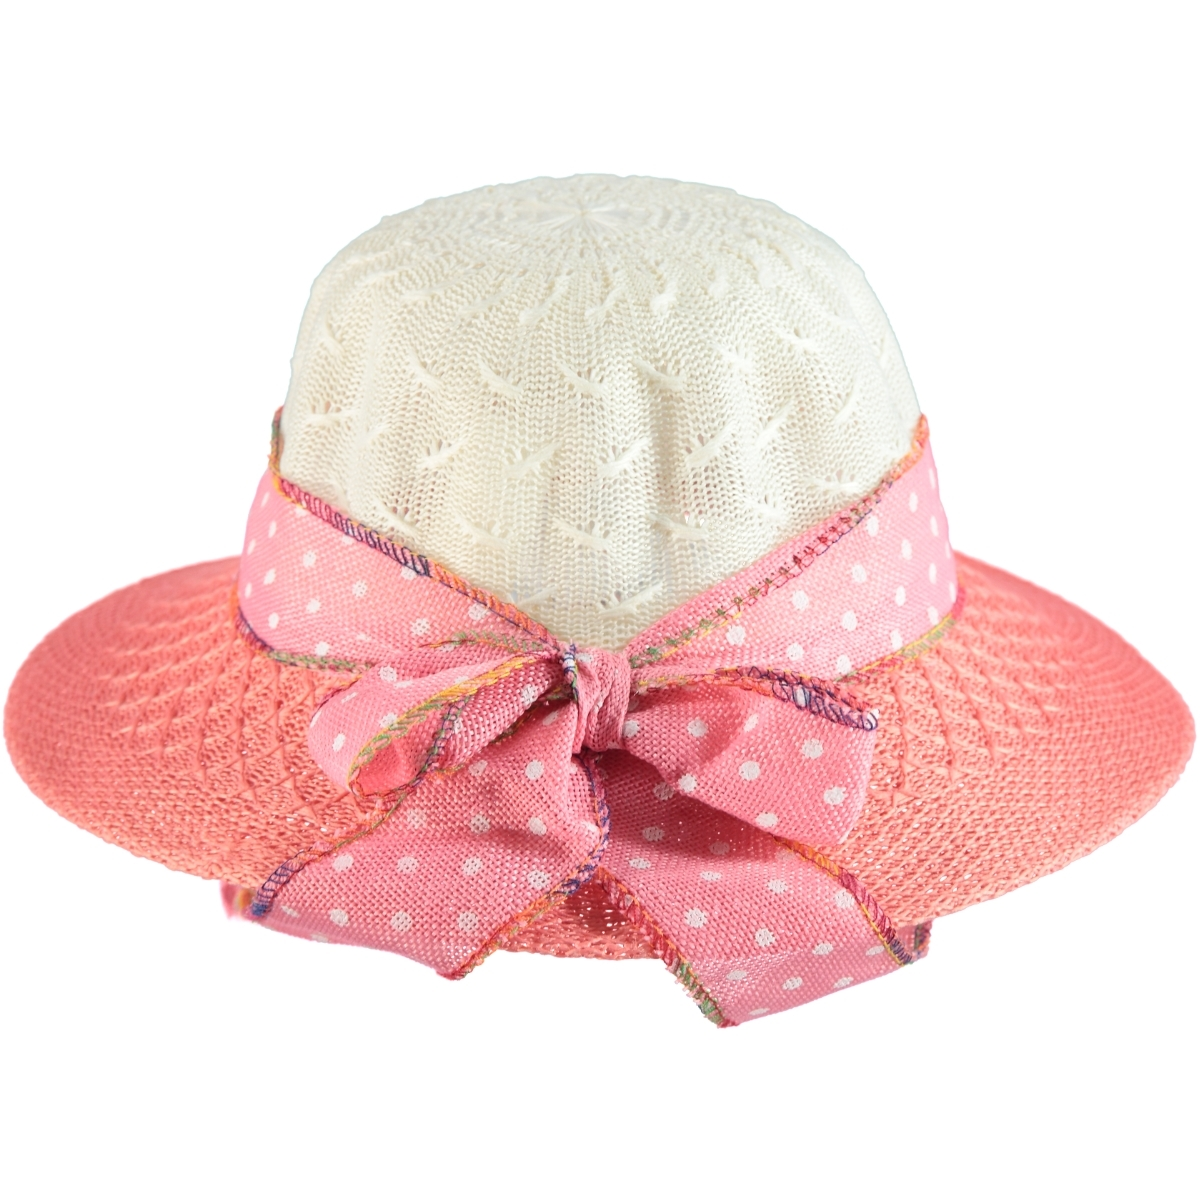 Kitti Straw Hat Girl Tongue In Cheek The Ages Of 6-12